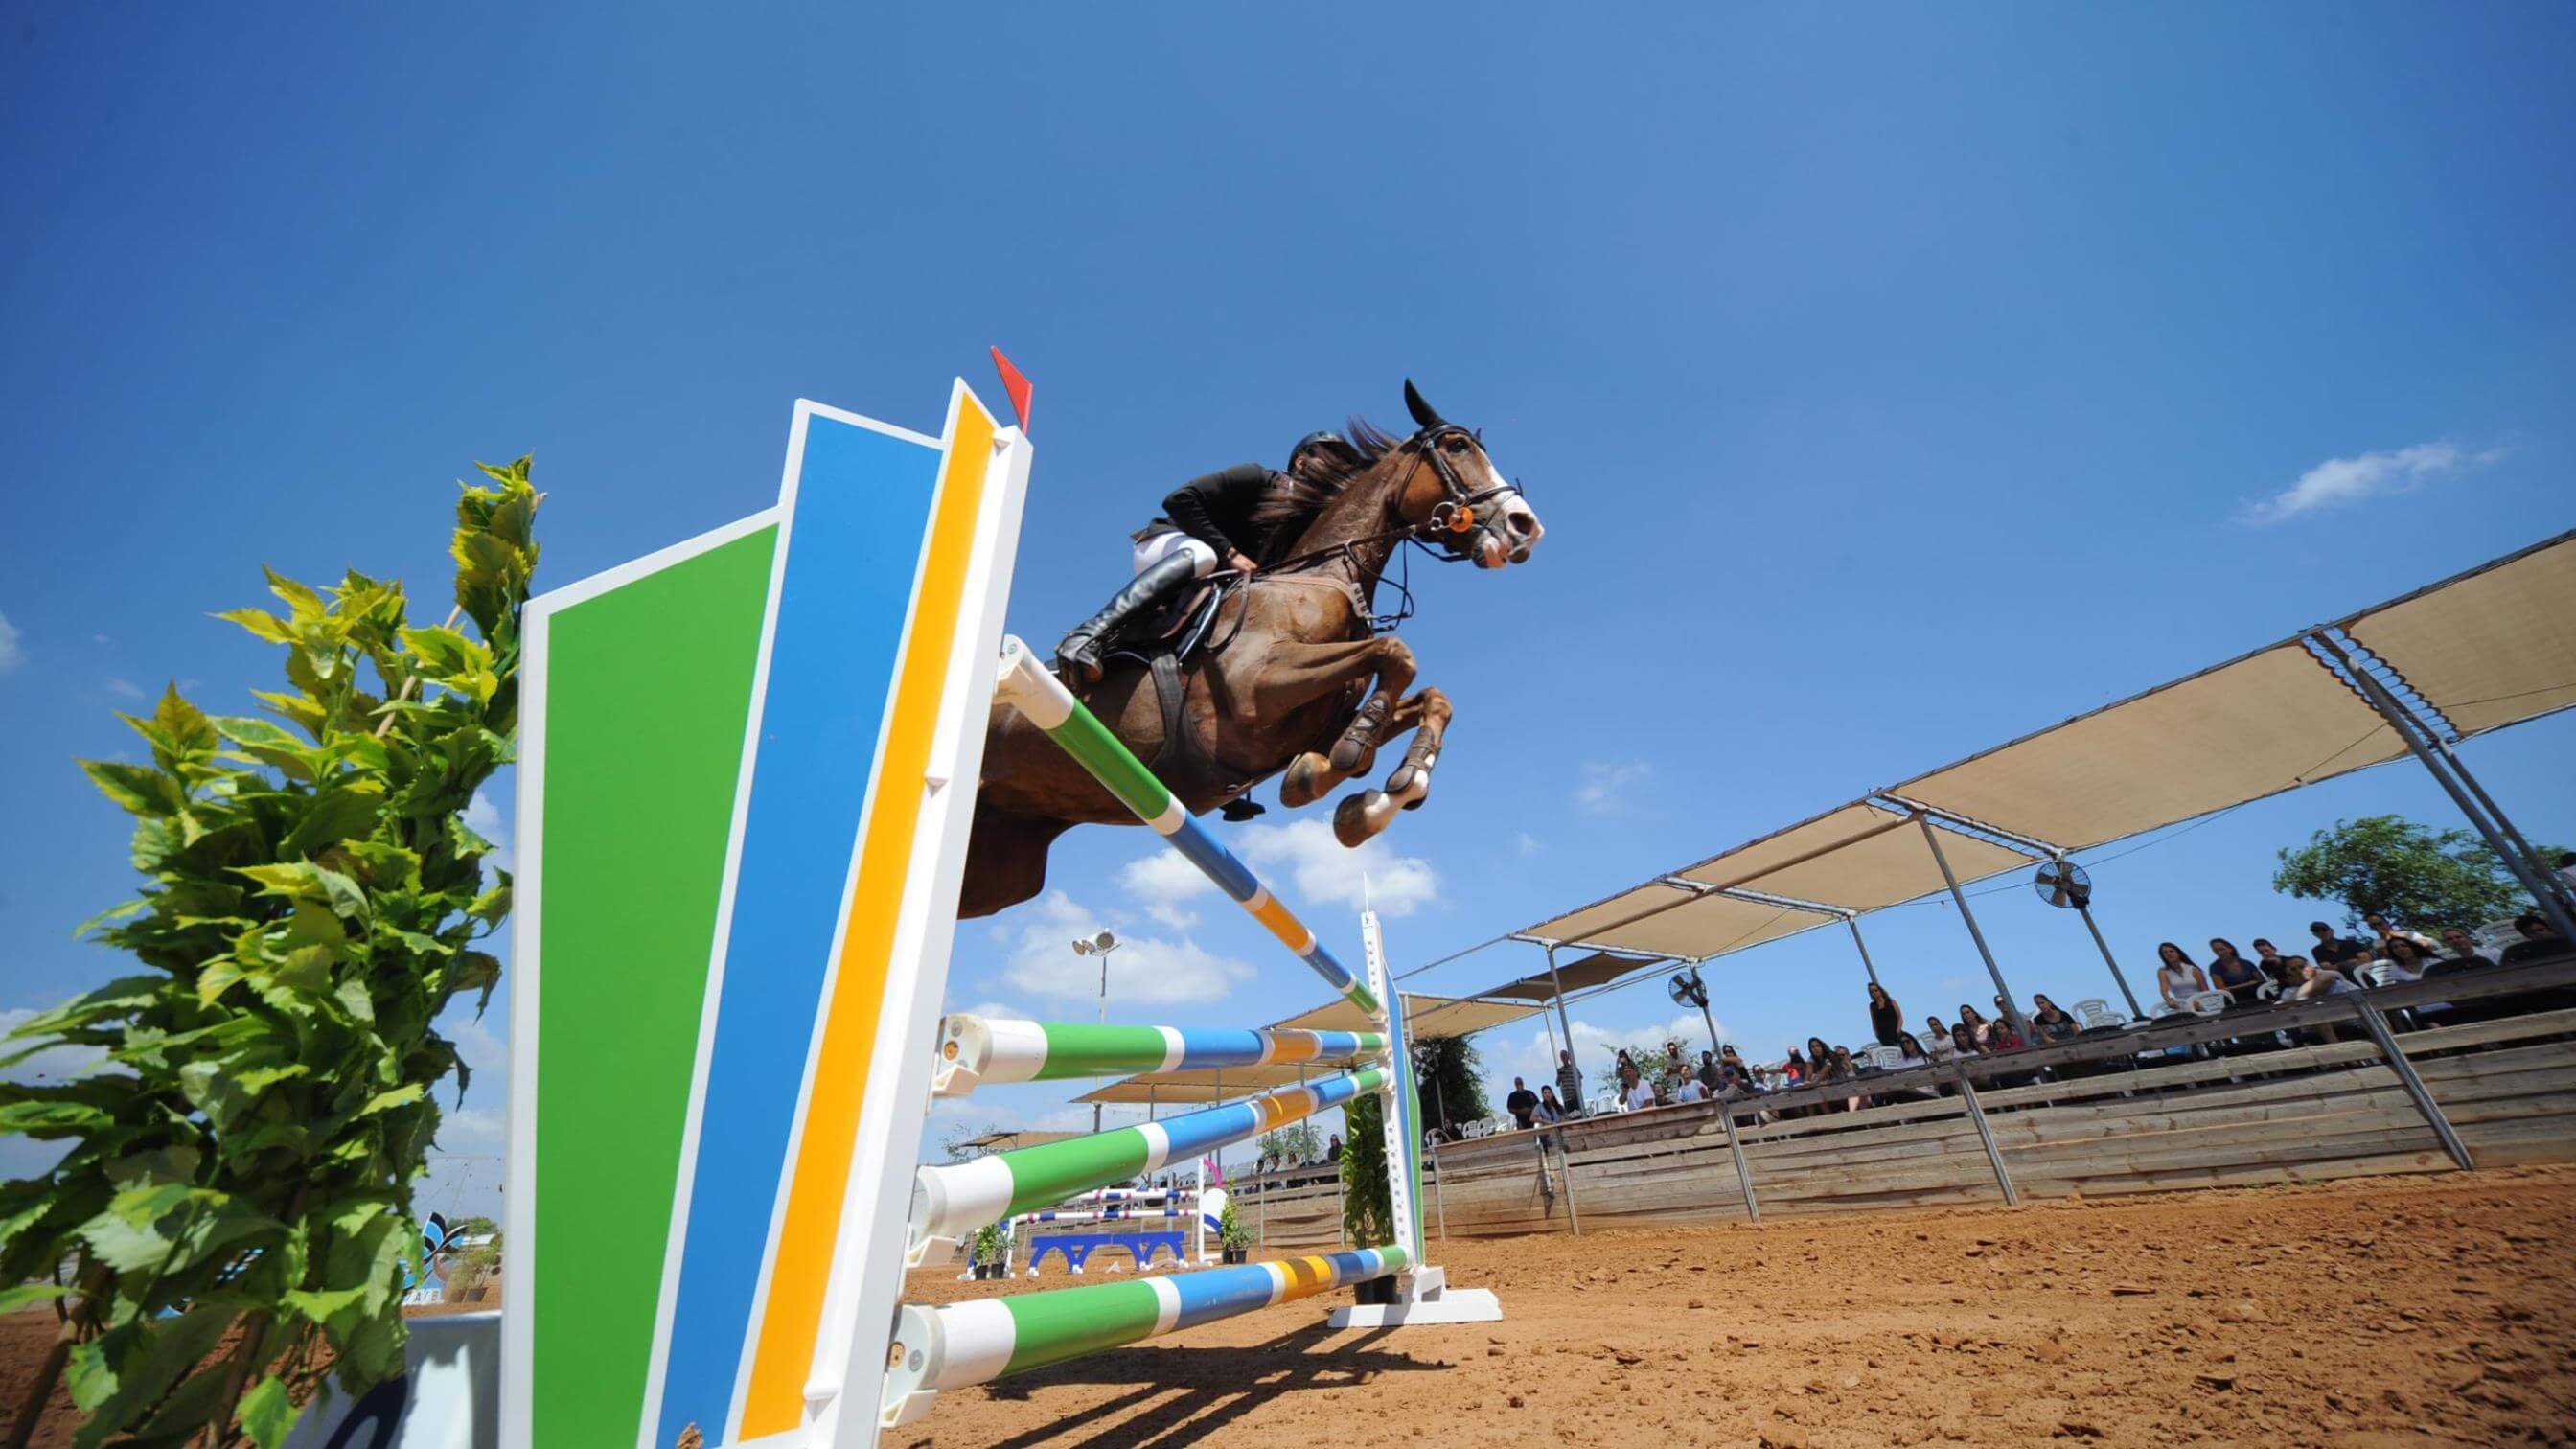 Horse and rider at showjumping event